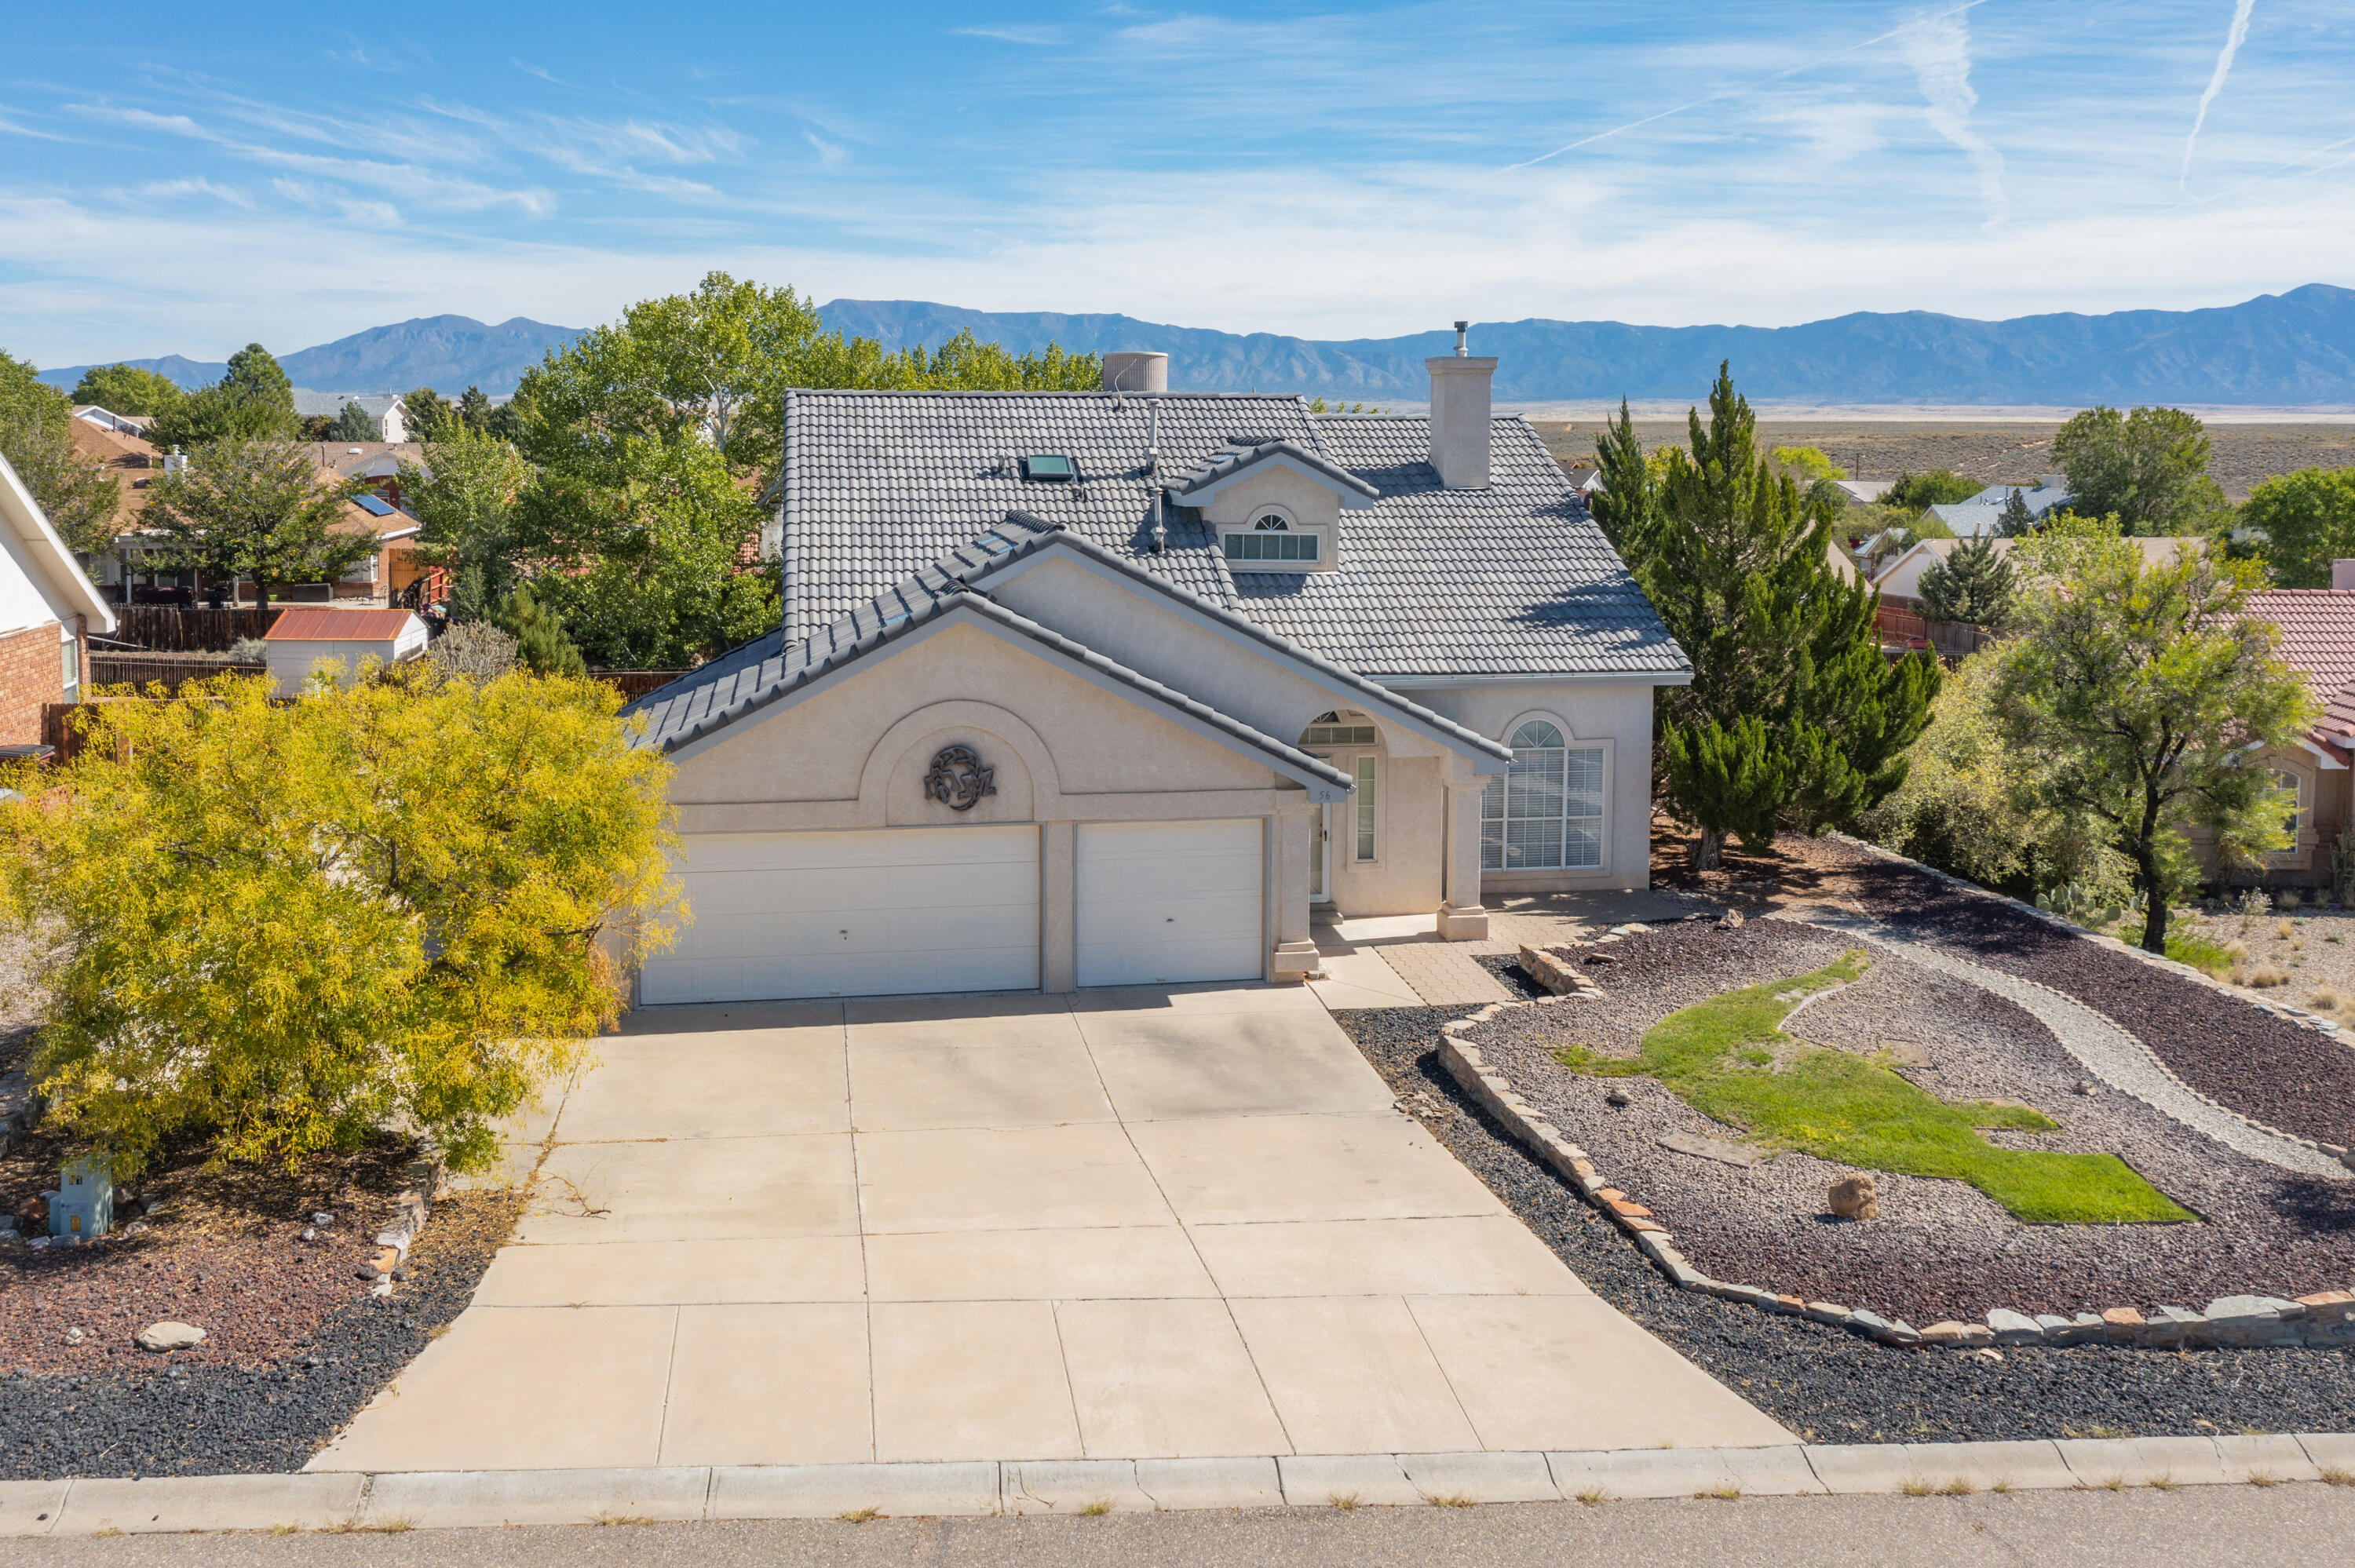 Beautiful and well-kept home in a desirable Los Lunas community with outstanding views of the Manzano Mountains. This custom home features 3 bedrooms, 2 1/2 baths, an oversized 3 car garage, high ceilings, a gas log fireplace, a sunroom, and a large loft with balcony to enjoy the sunrise. This property also includes completed mature landscaping in both the front and back yard. The home's coveted tile roof is only 7 years old and there are enough new tiles to roof a sizable outbuilding. The home also features a completely remodeled kitchen with all new Kitchen Aid Appliances including the fridge, microwave, dishwasher, oven & stove. This turnkey home will not last long, please bring your offers.